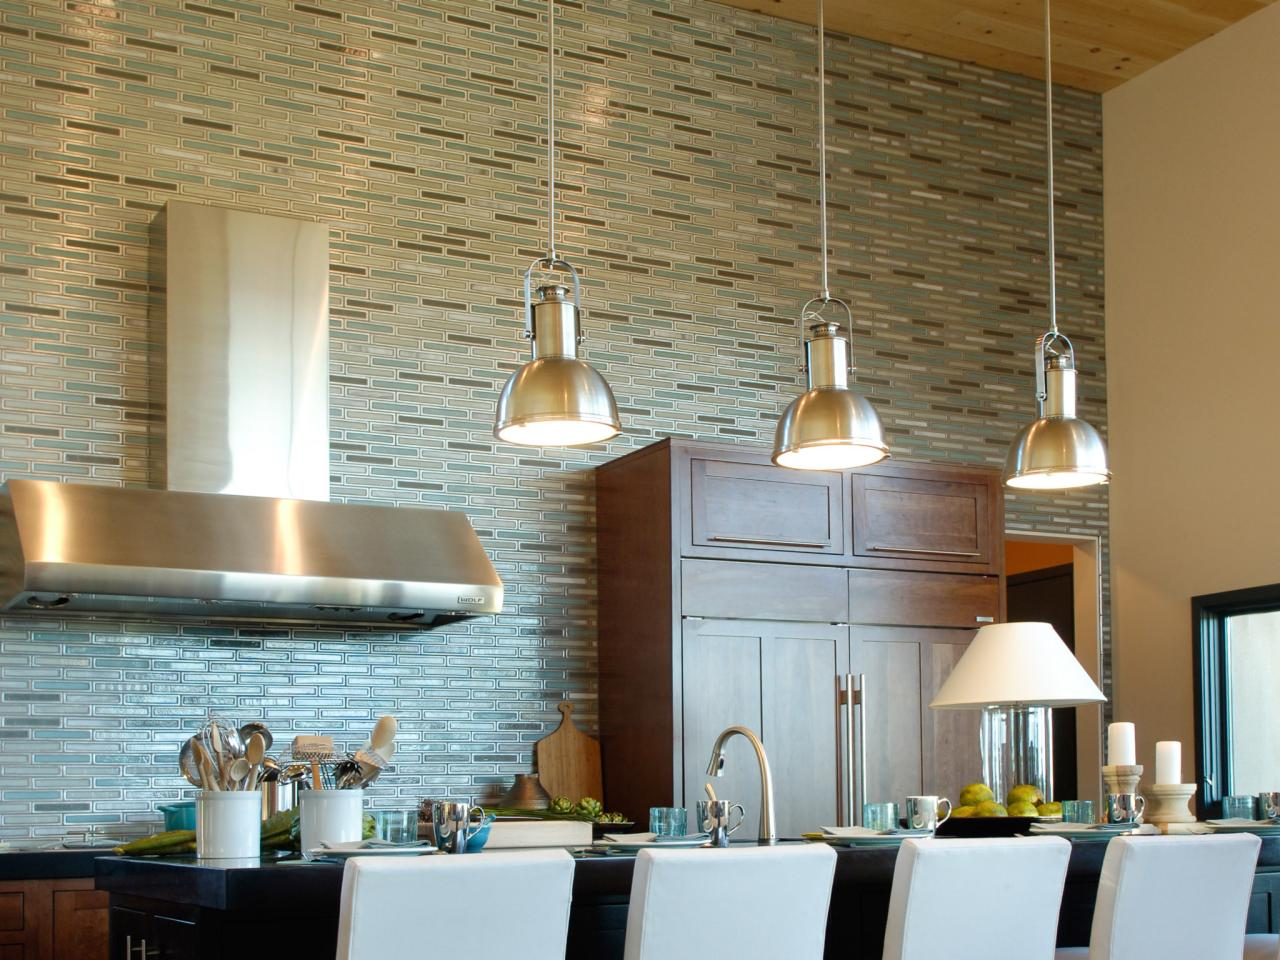 Tile backsplash ideas pictures tips from hgtv hgtv for Great kitchen tile ideas